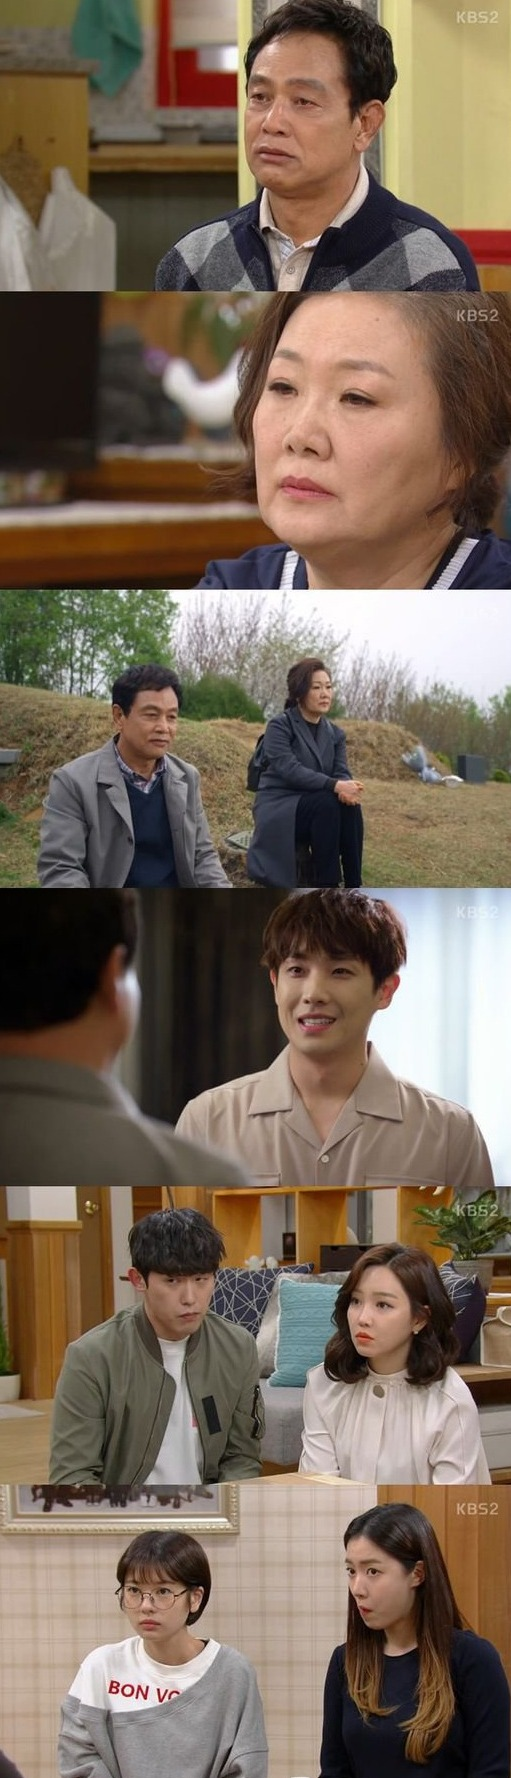 [Spoiler] Added episodes 15 and 16 captures for the Korean drama 'Father is Strange'